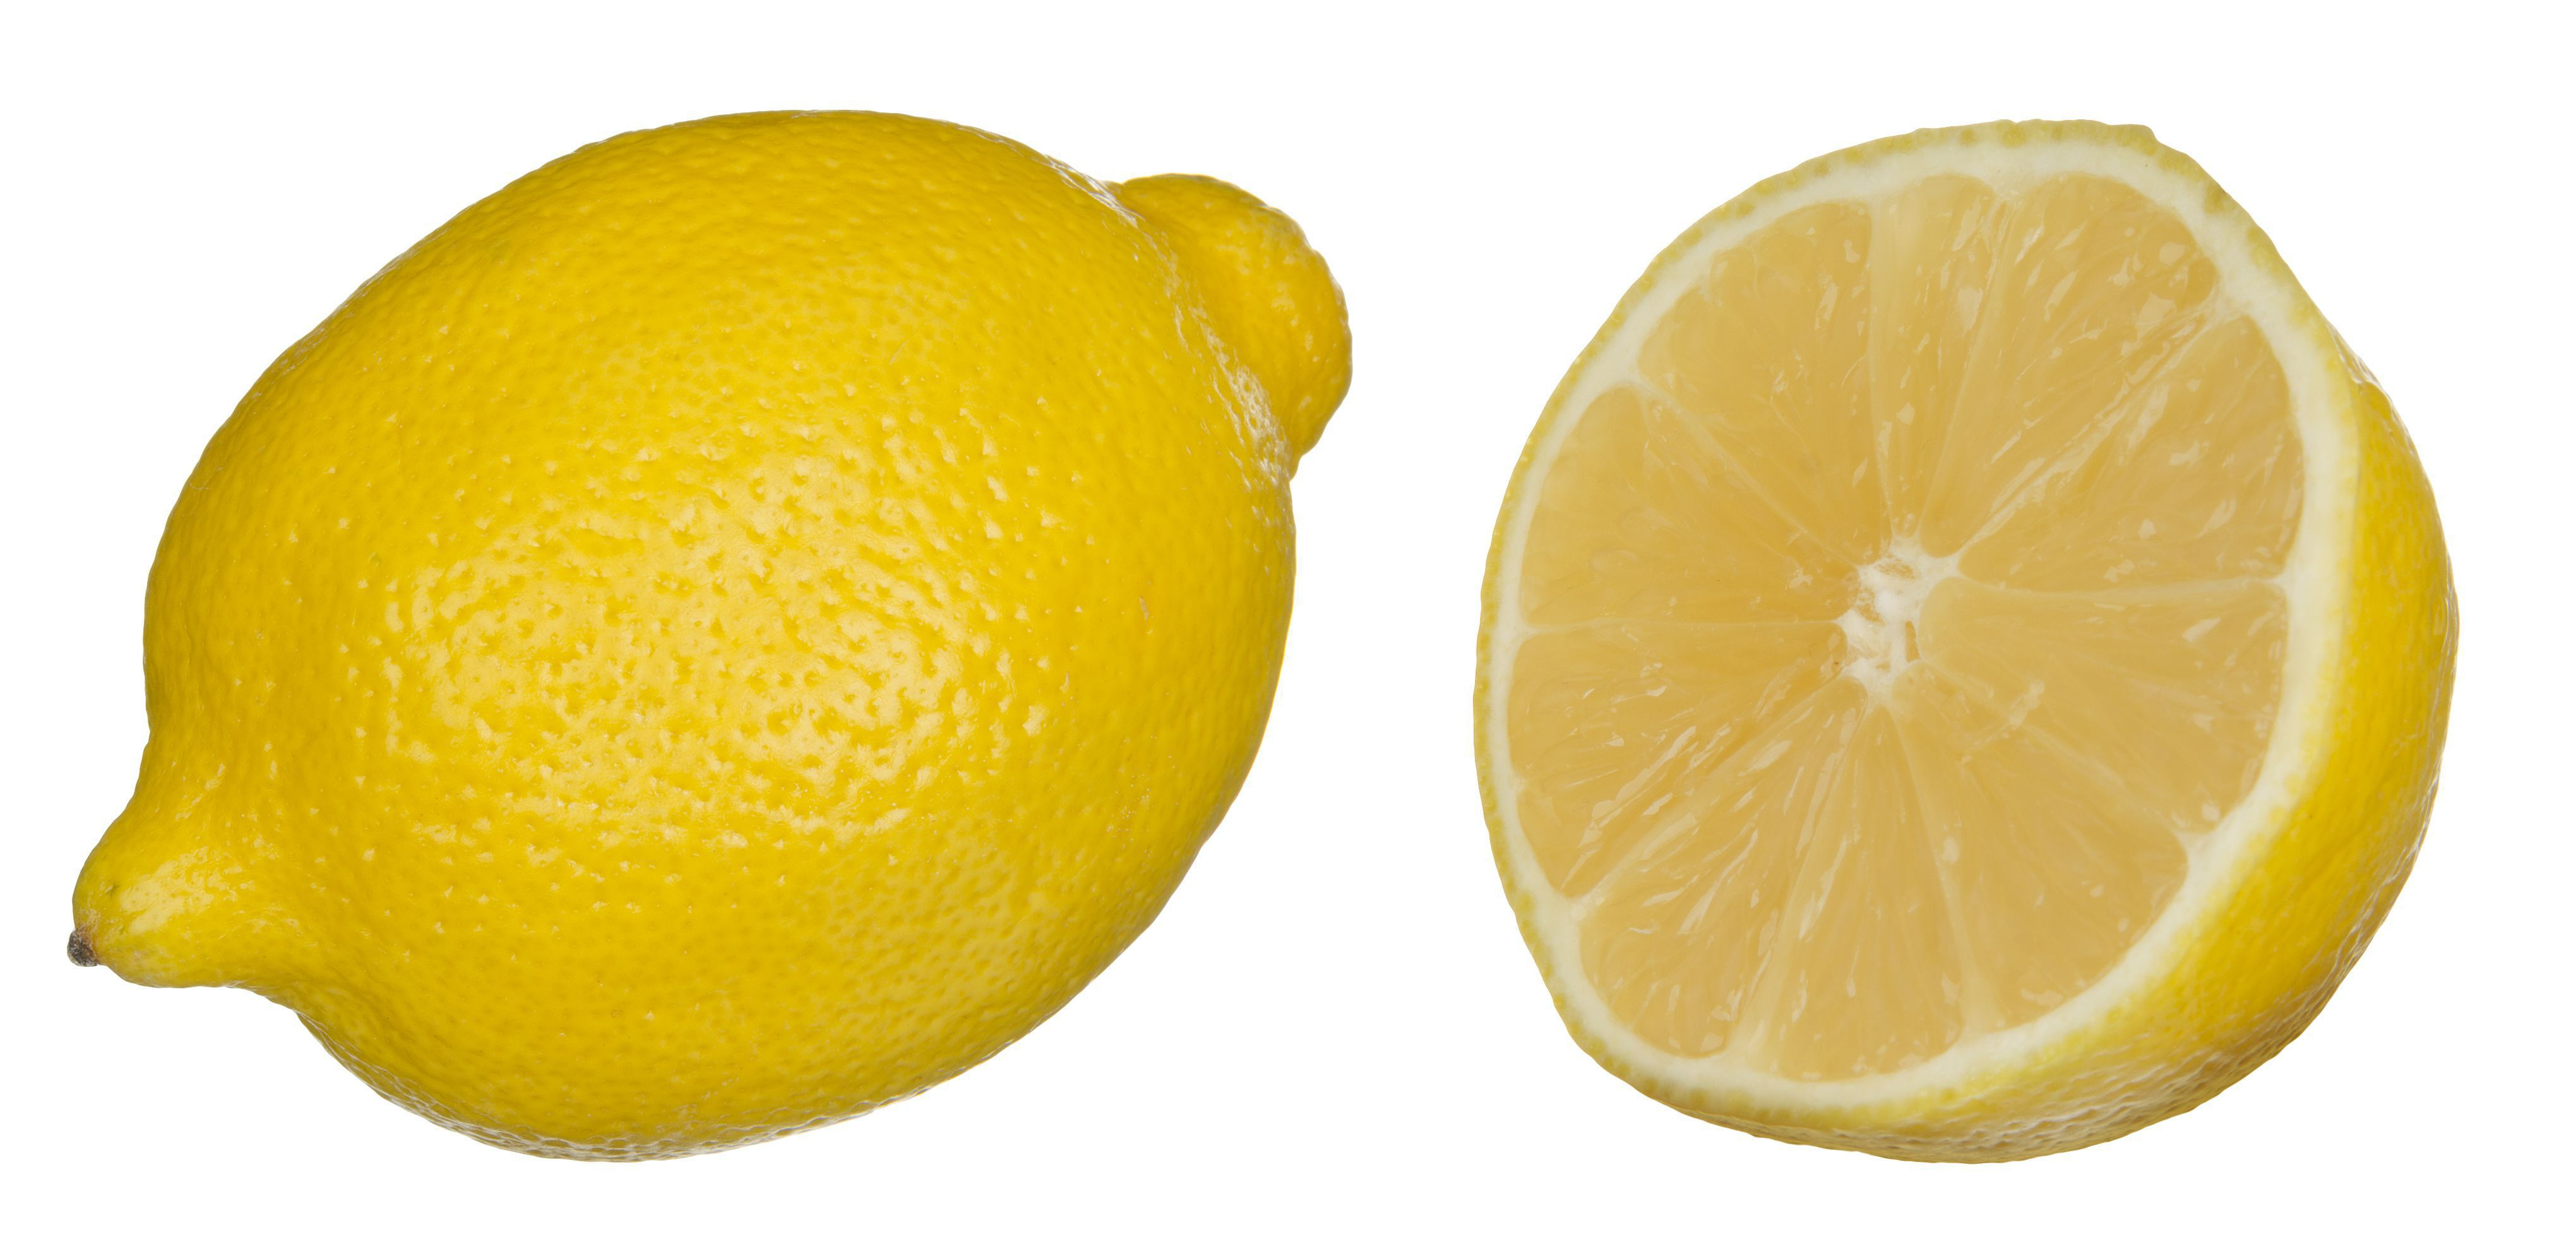 Lemon Wallpapers Images Photos Pictures Backgrounds